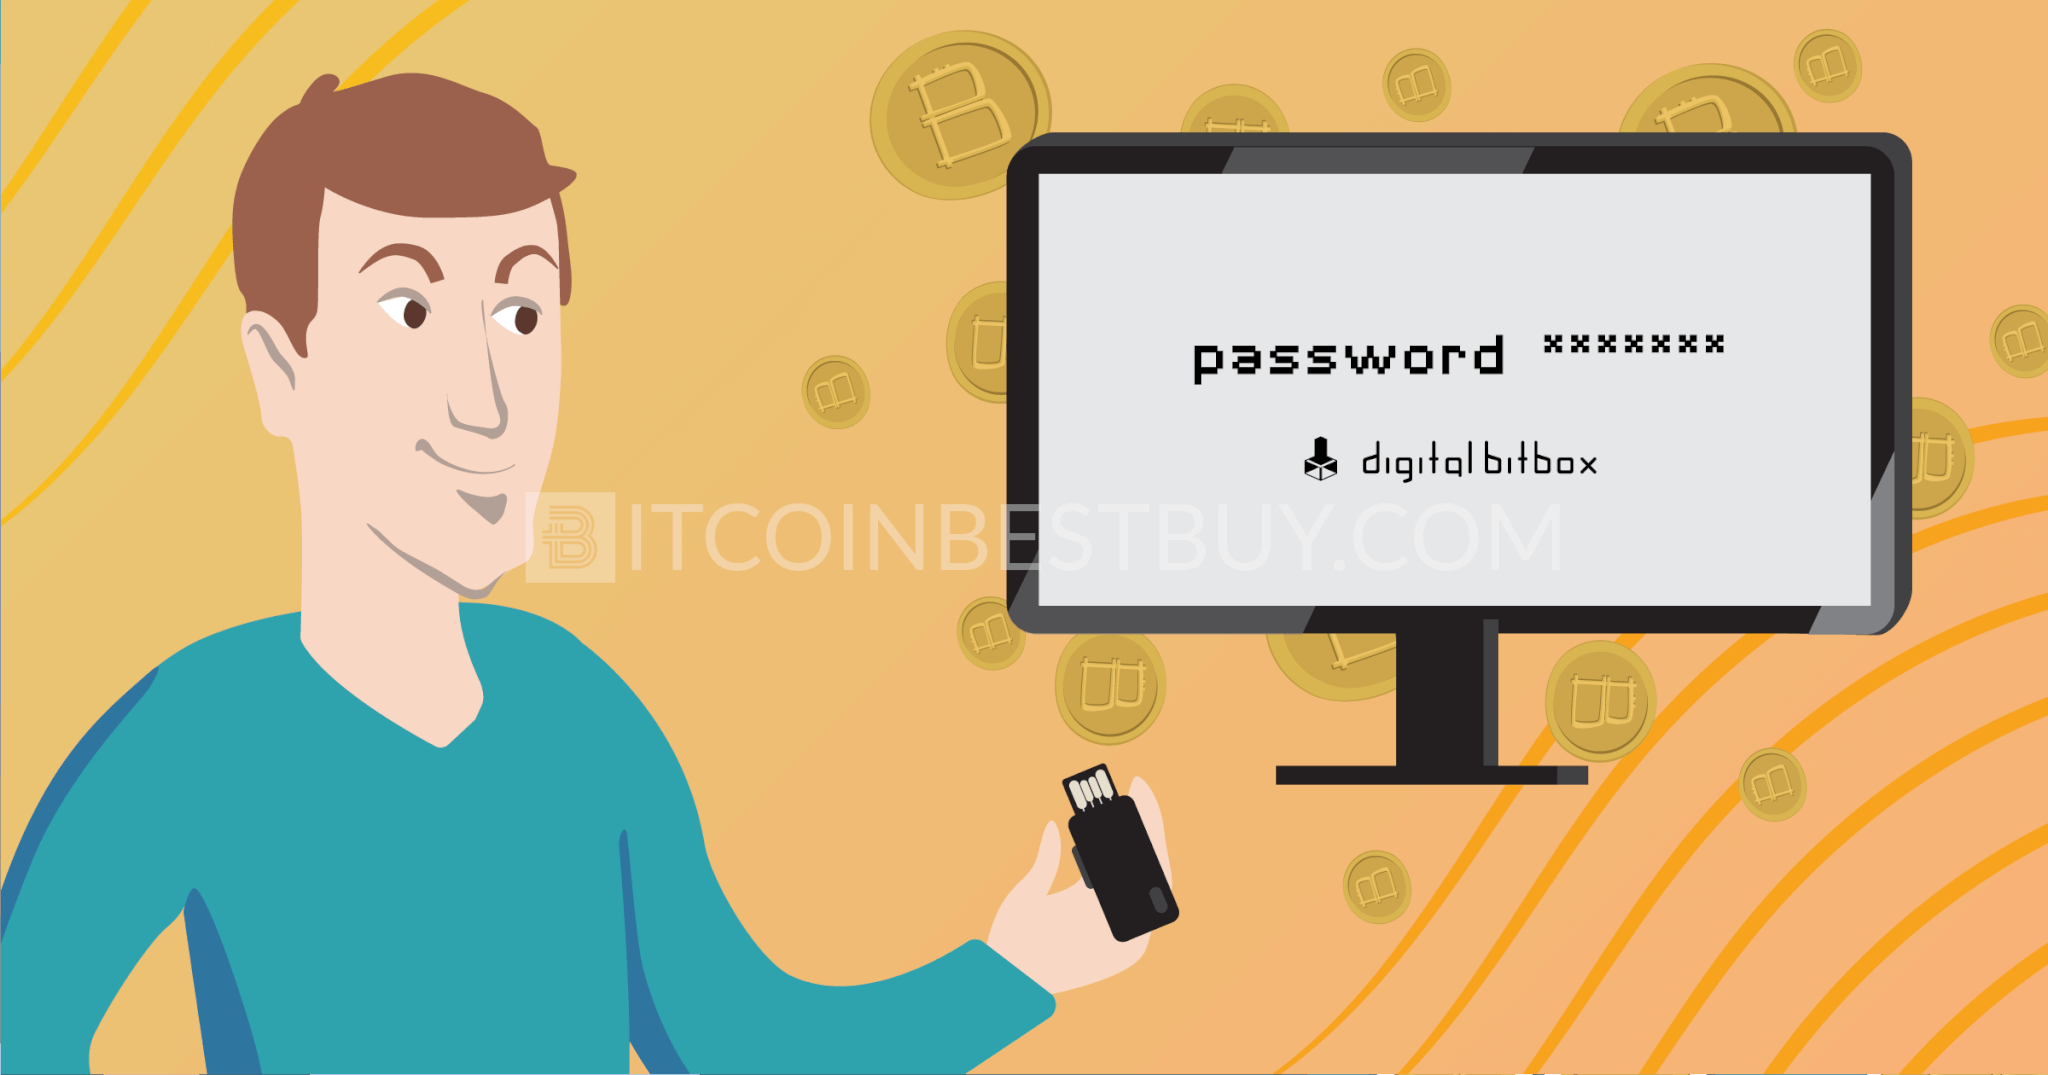 Credentials And Bitcoins Offline With Minimum Risk Of Hacking Stealing Your Funds The Other Name For Such Equipment Is Cold Wallets